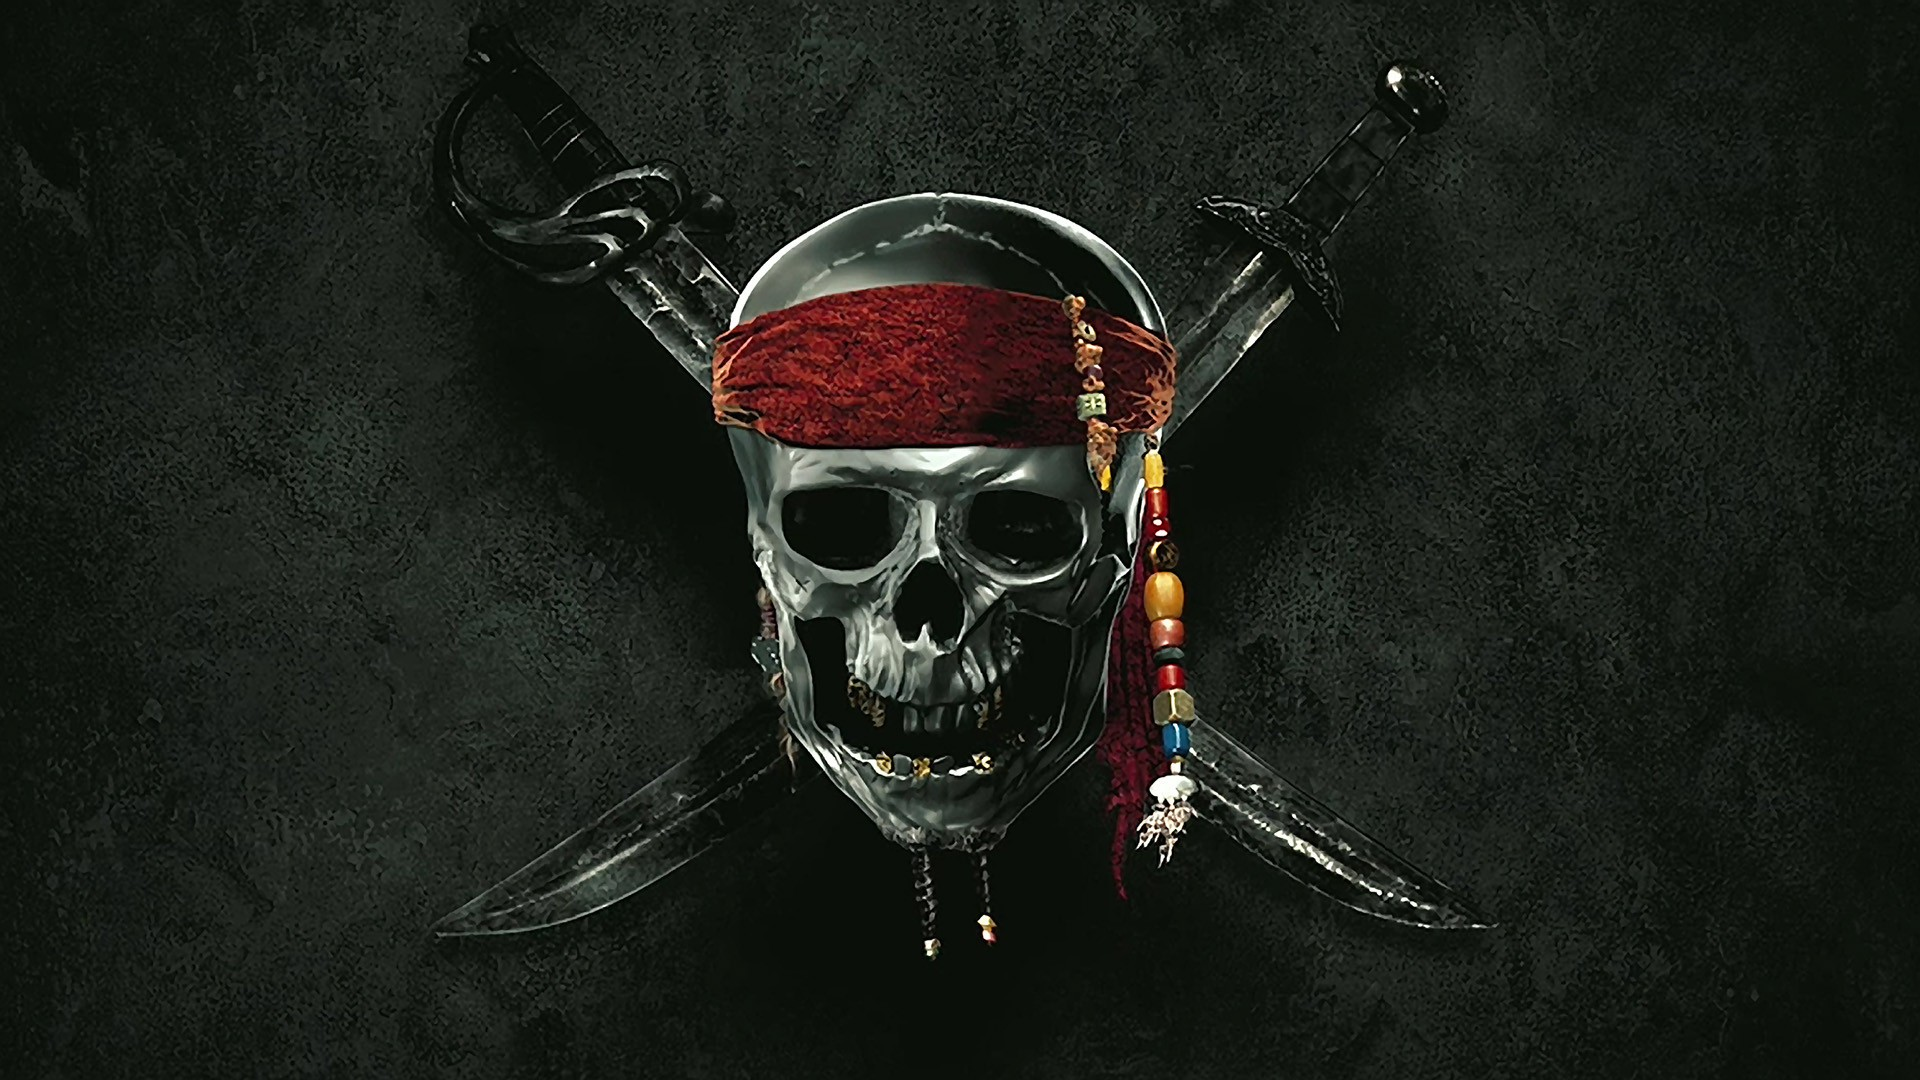 Skull Wallpapers High Quality | Download Free